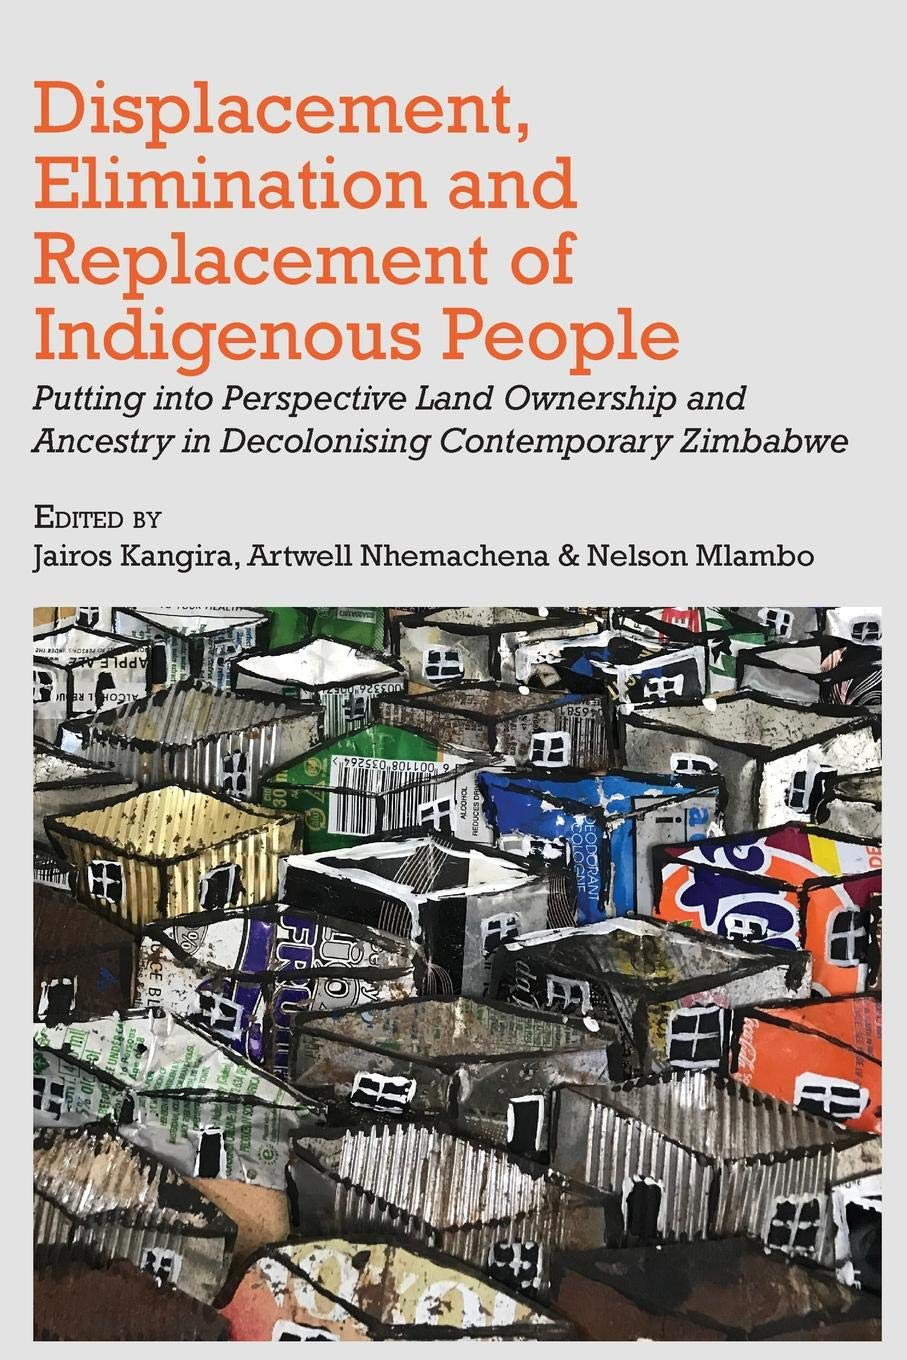 Amazon.com: Displacement, Elimination and Replacement of ...